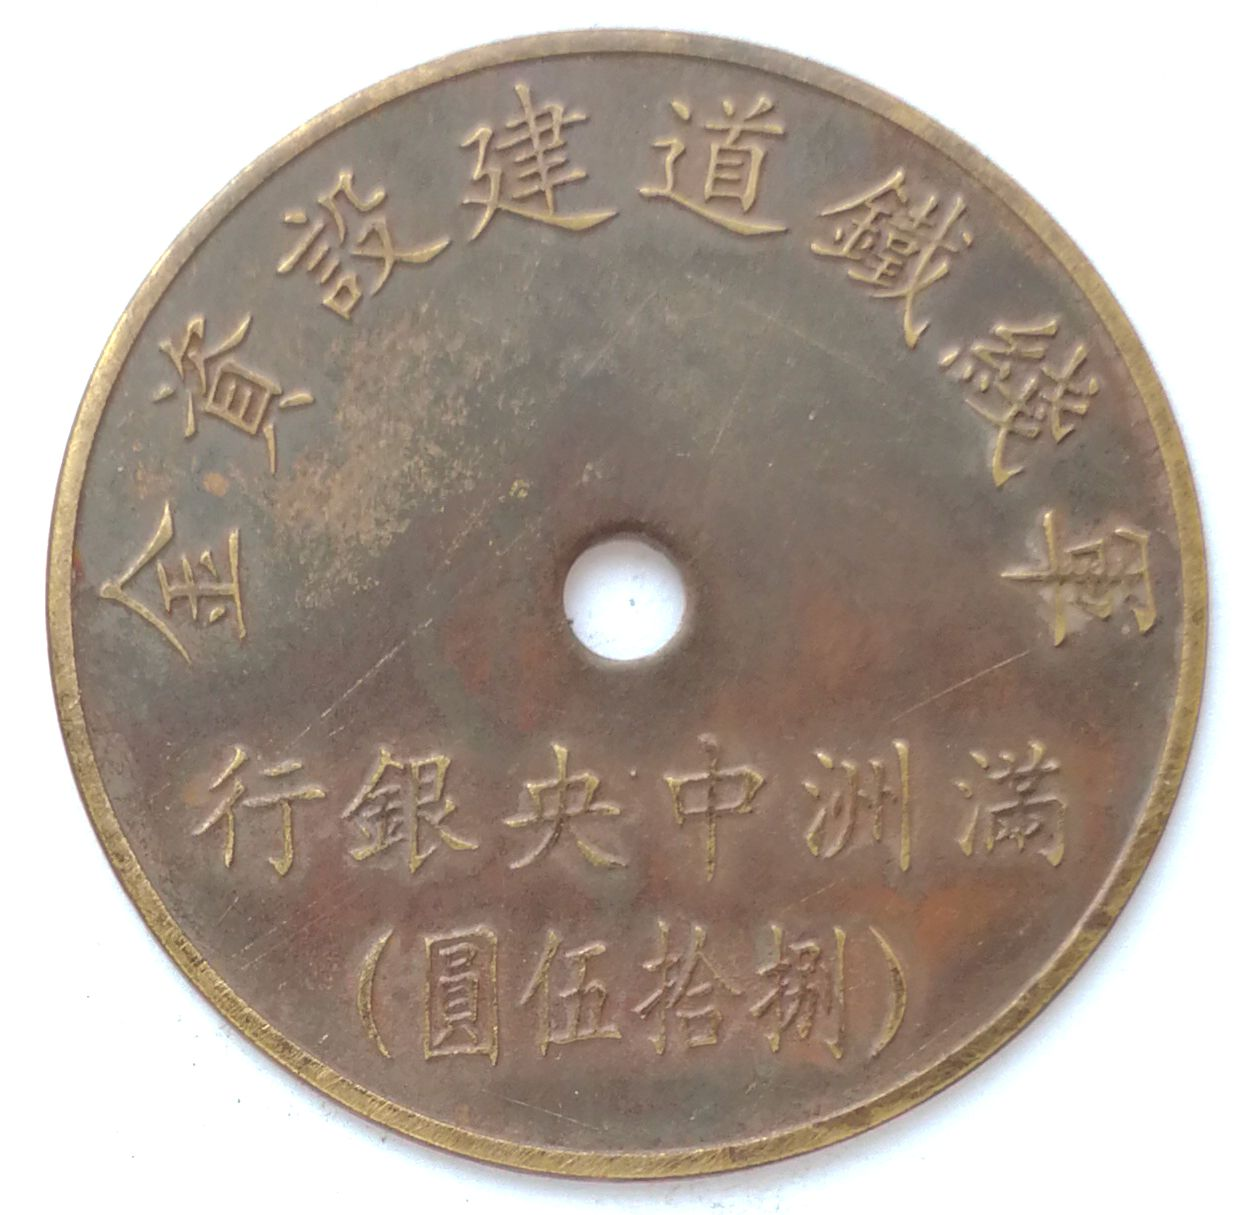 BT469, Army Line Railway Construction Fund of Manchukuo, Token Bond, 85 Yen 1944